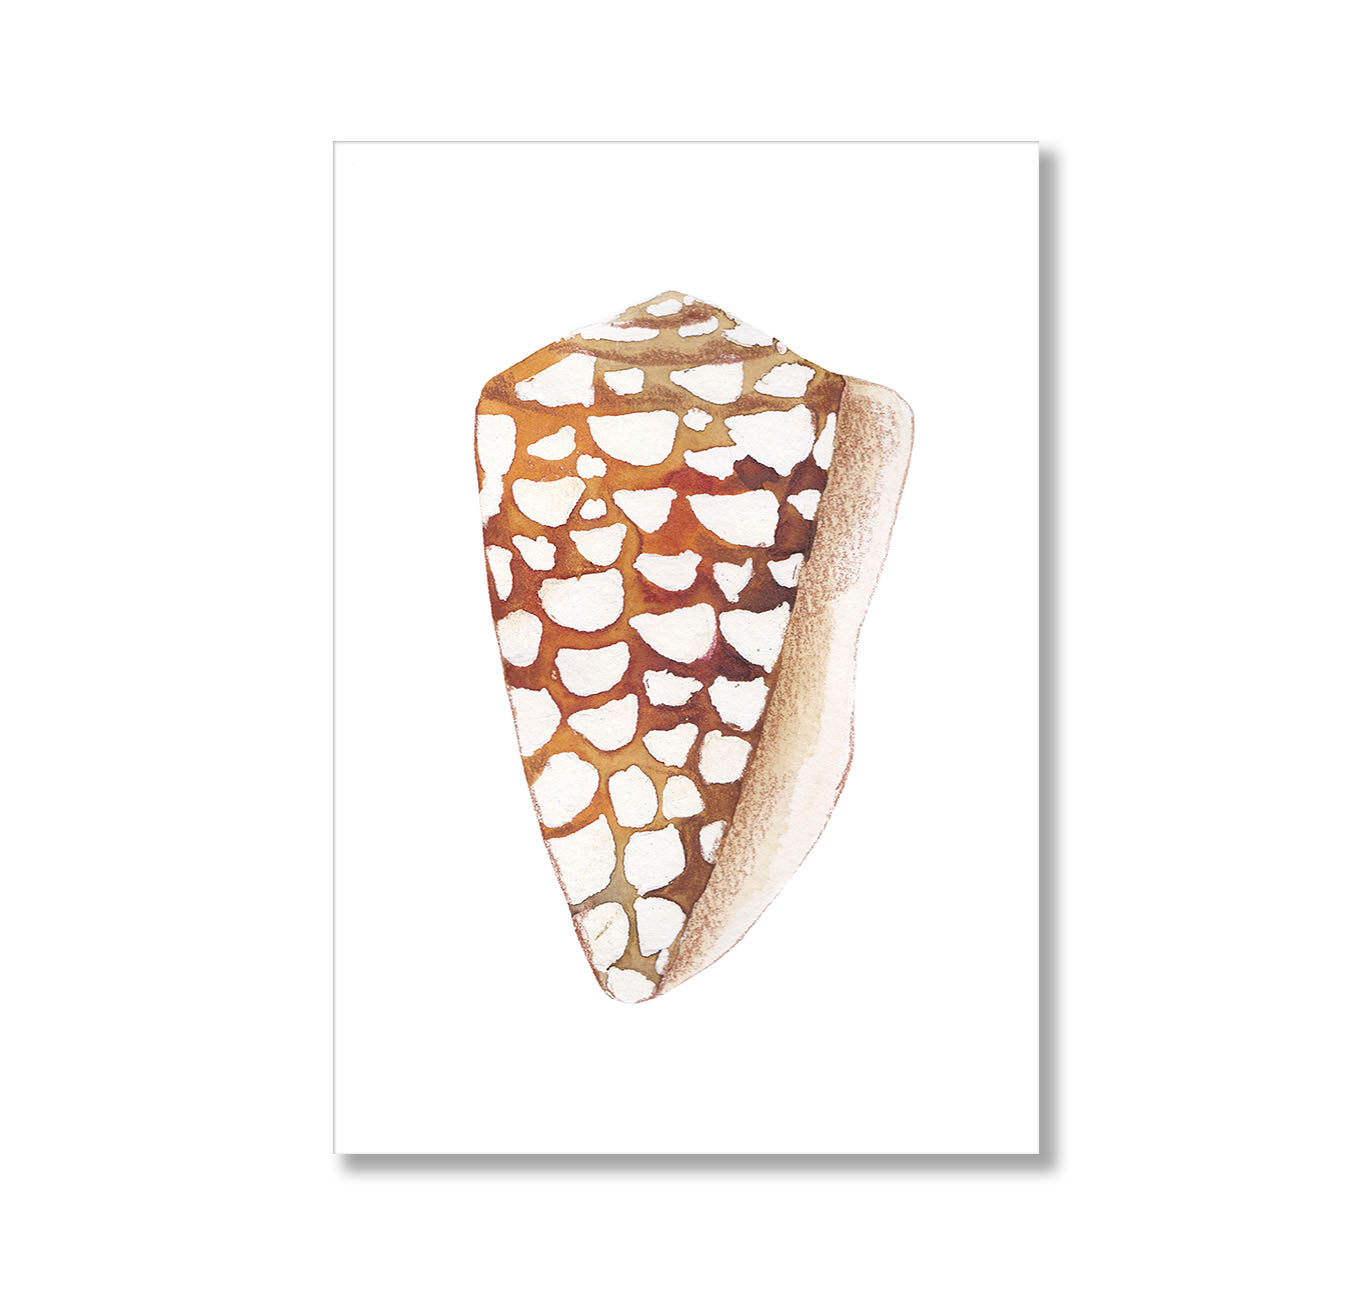 Brown Shell Illustration Poster Print-Print-Mode Prints